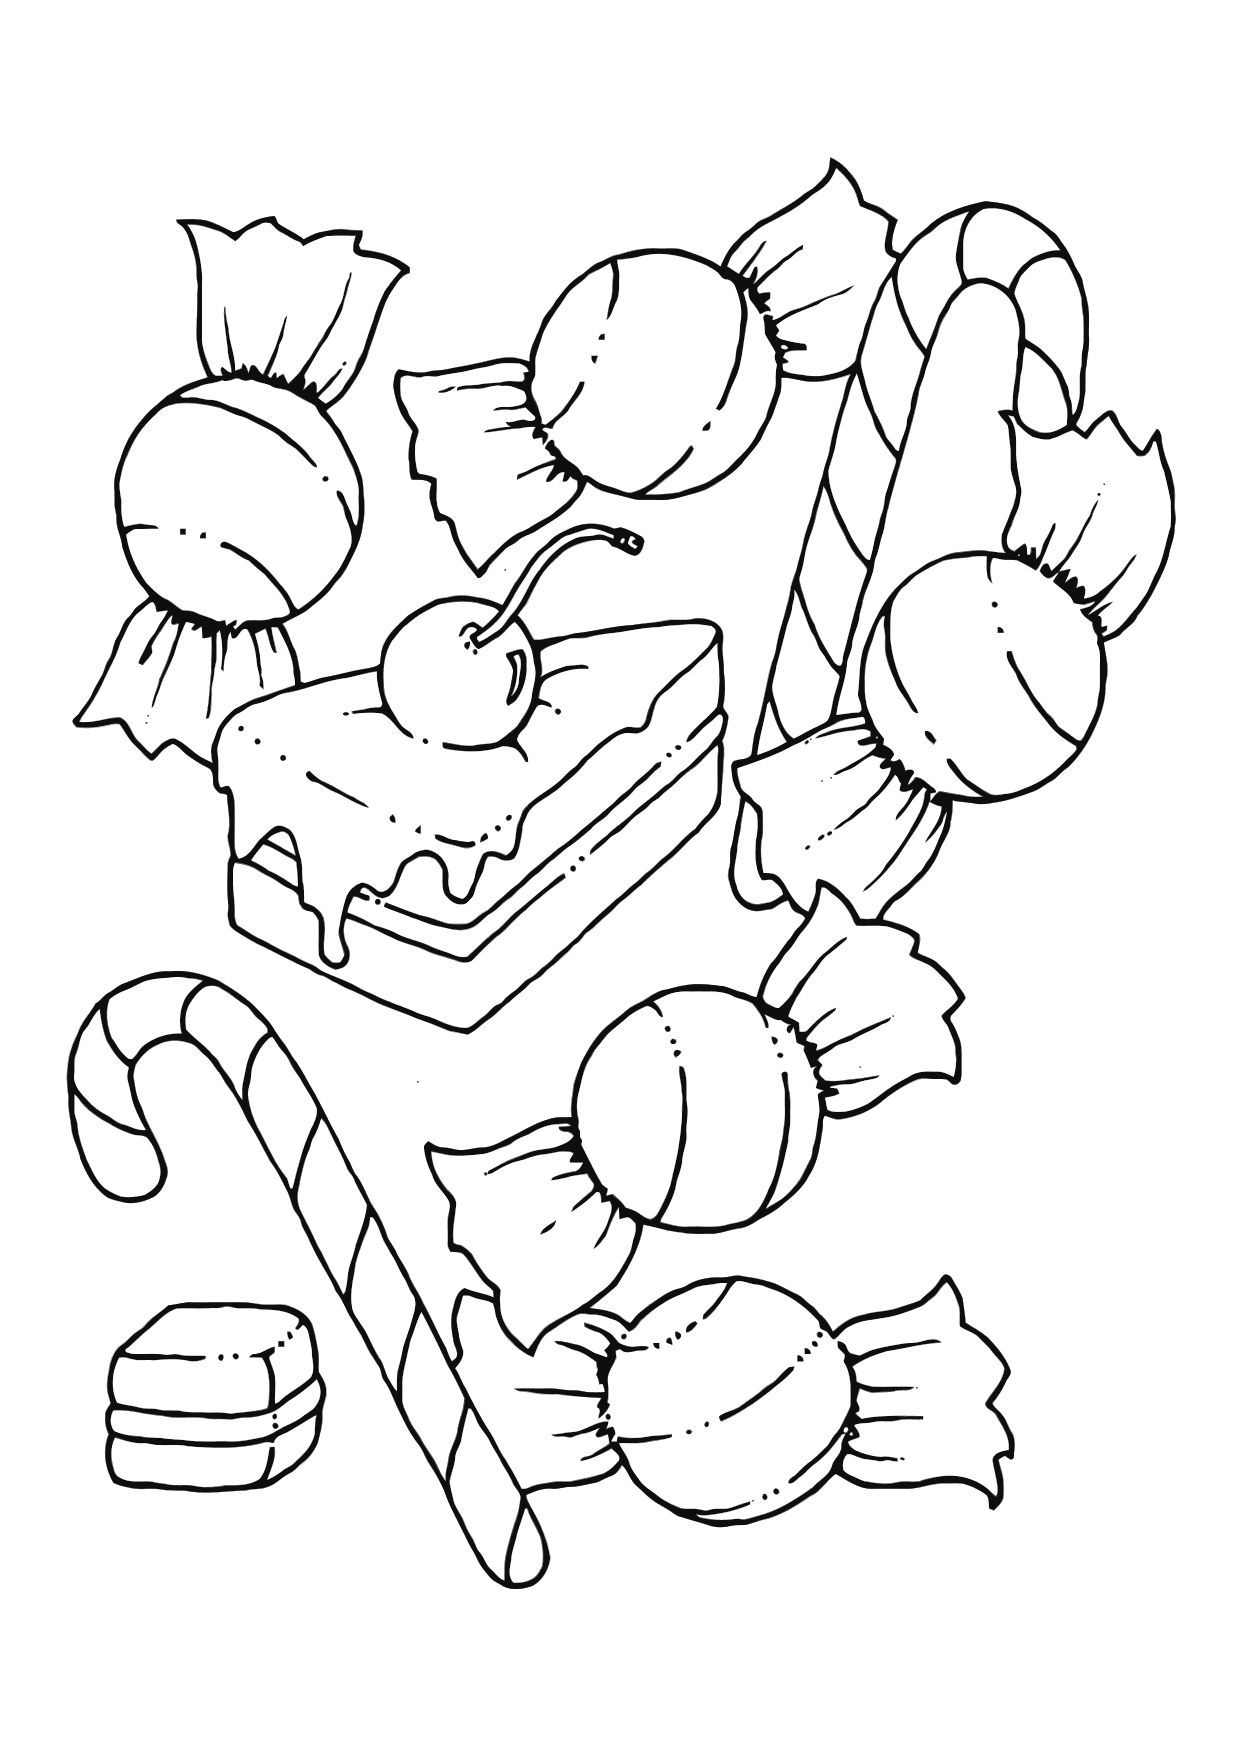 sweets coloring pages Free Printable Candy Coloring Pages For Kids | Christmas n winter  sweets coloring pages